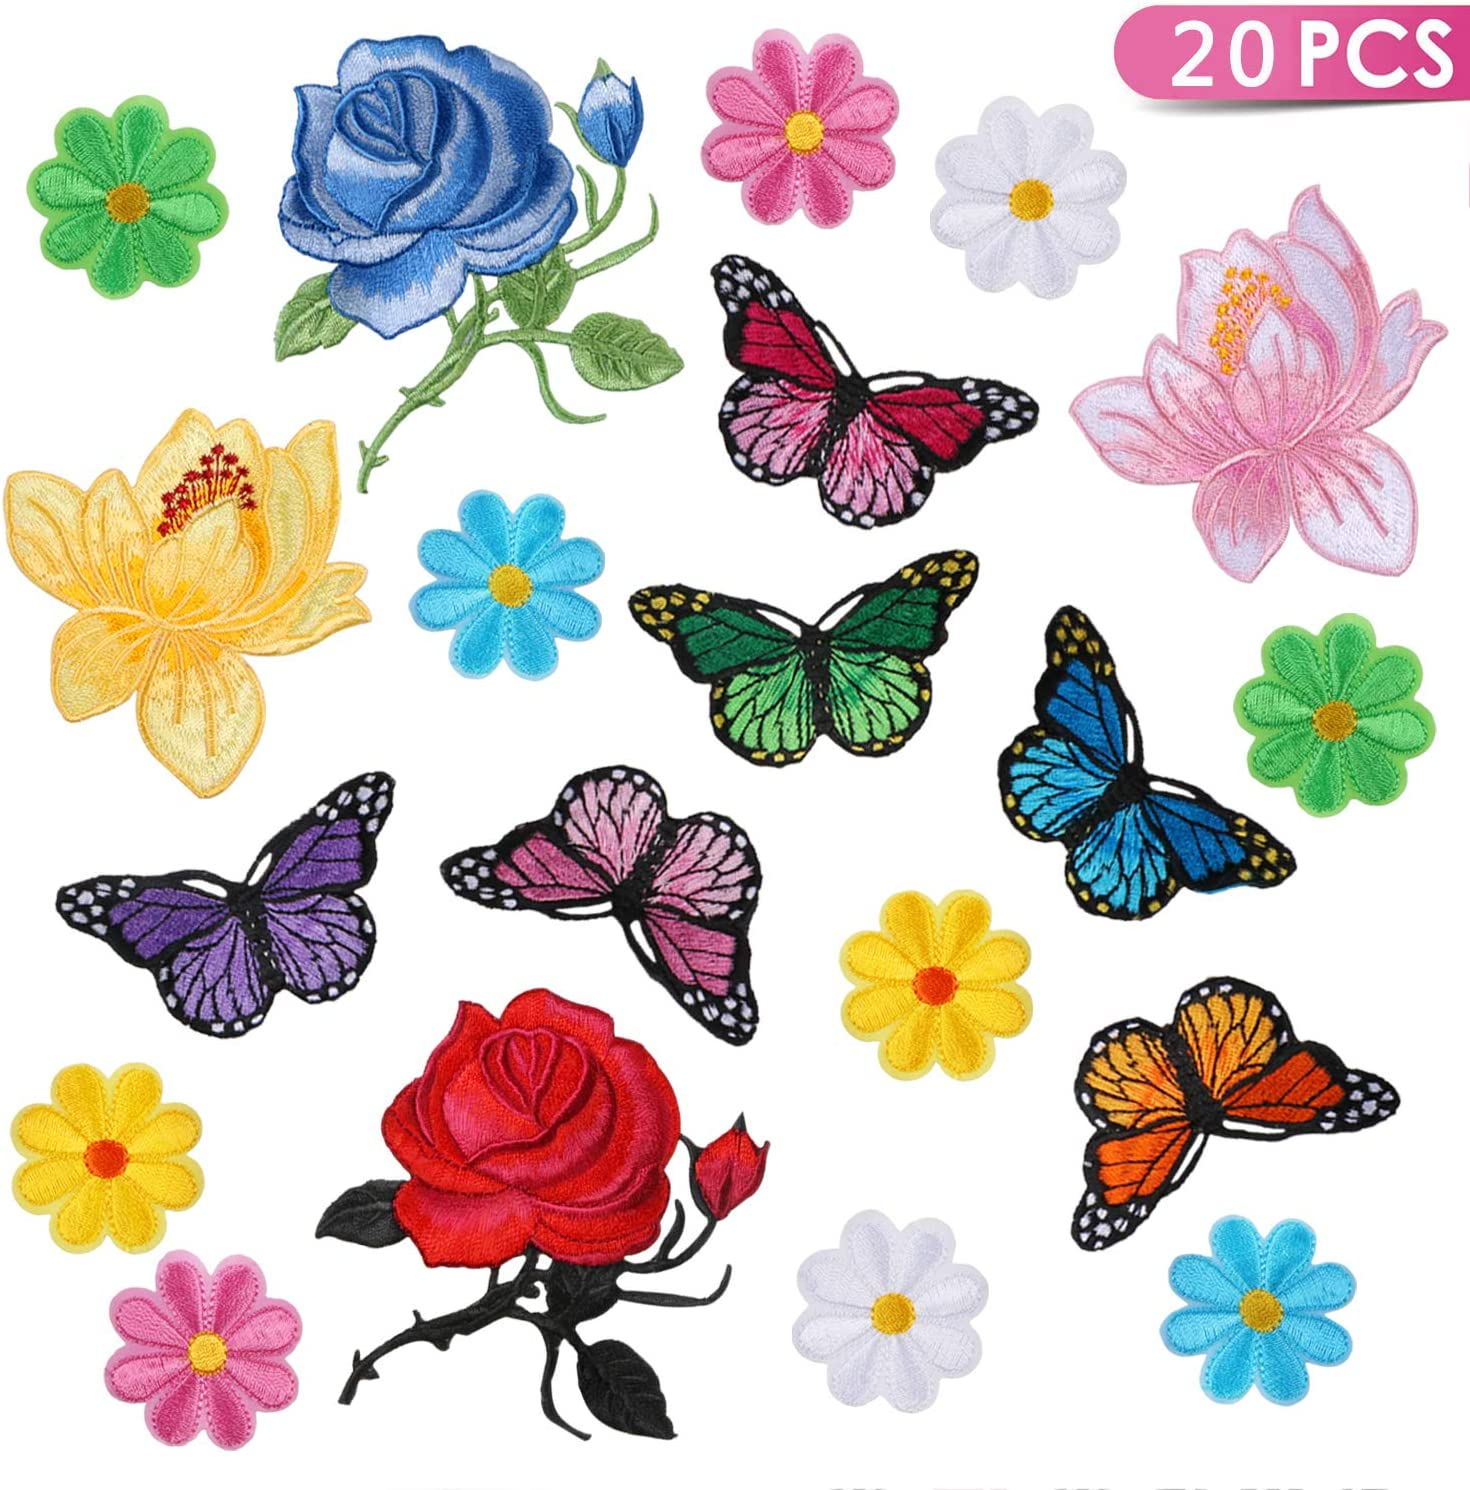 Kissbuty 20 Pcs Flowers Butterfly Iron on Patches Sew on Embroidery Applique Patches for Arts Crafts DIY Decor, Jeans, Jackets, Clothing, Bags(Rose/Lotus/Sun Flower/Butterfly Decorative Patch)